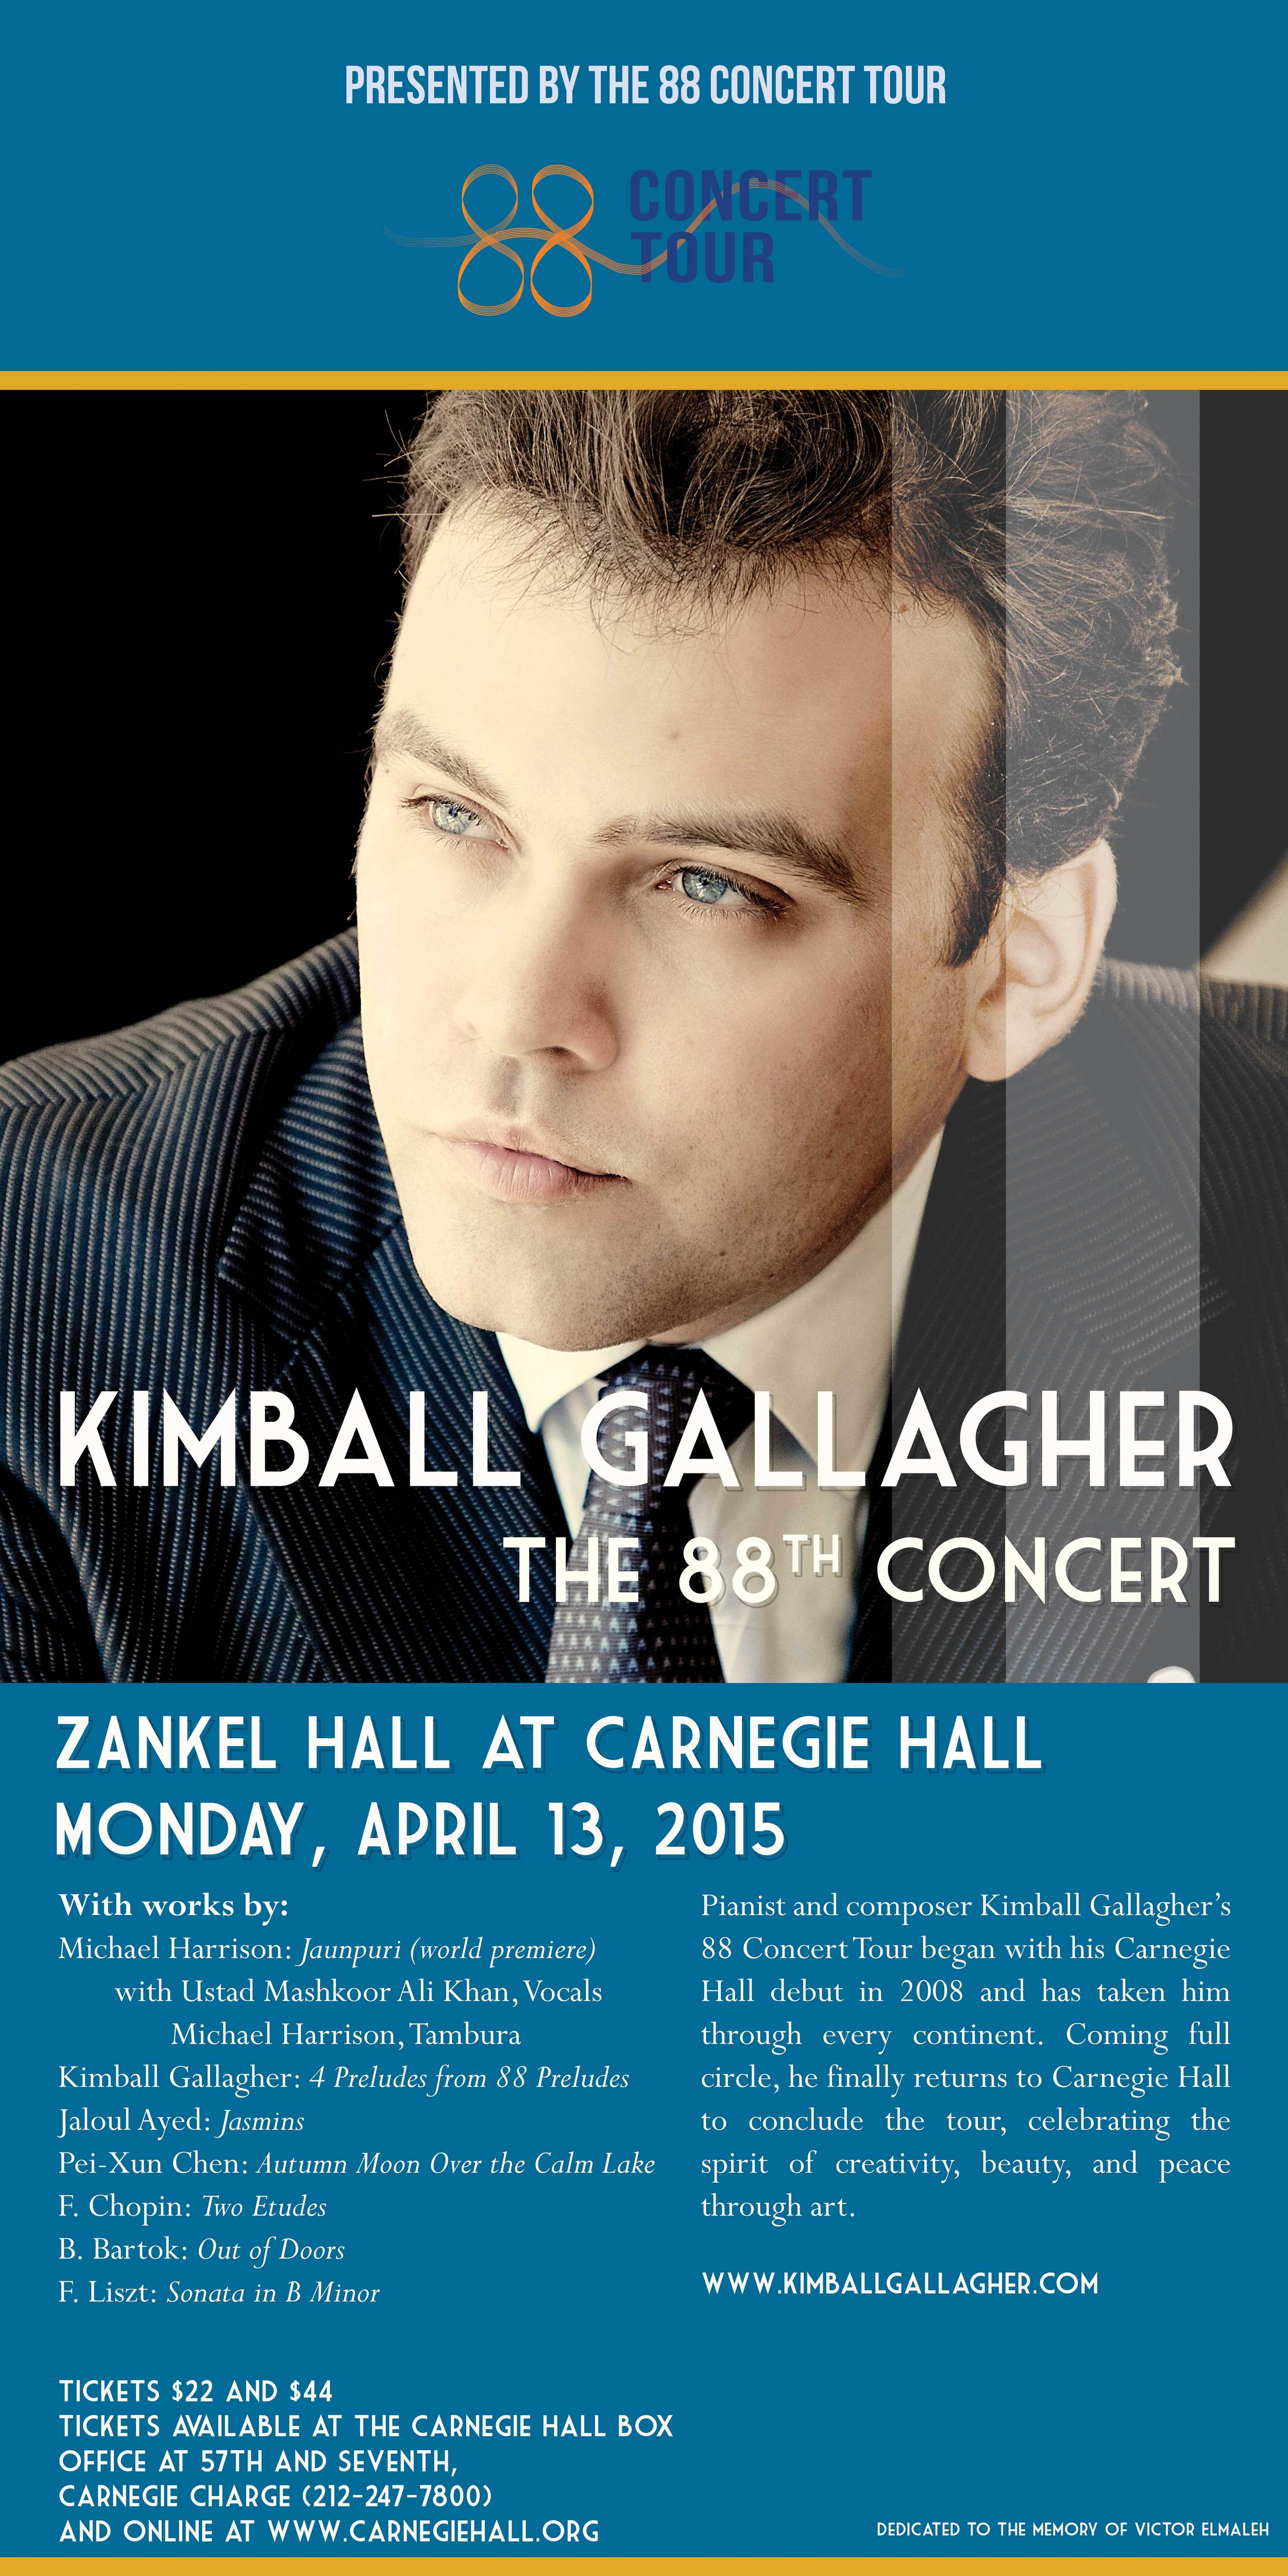 Kimball Gallagher at Carnegie Hall